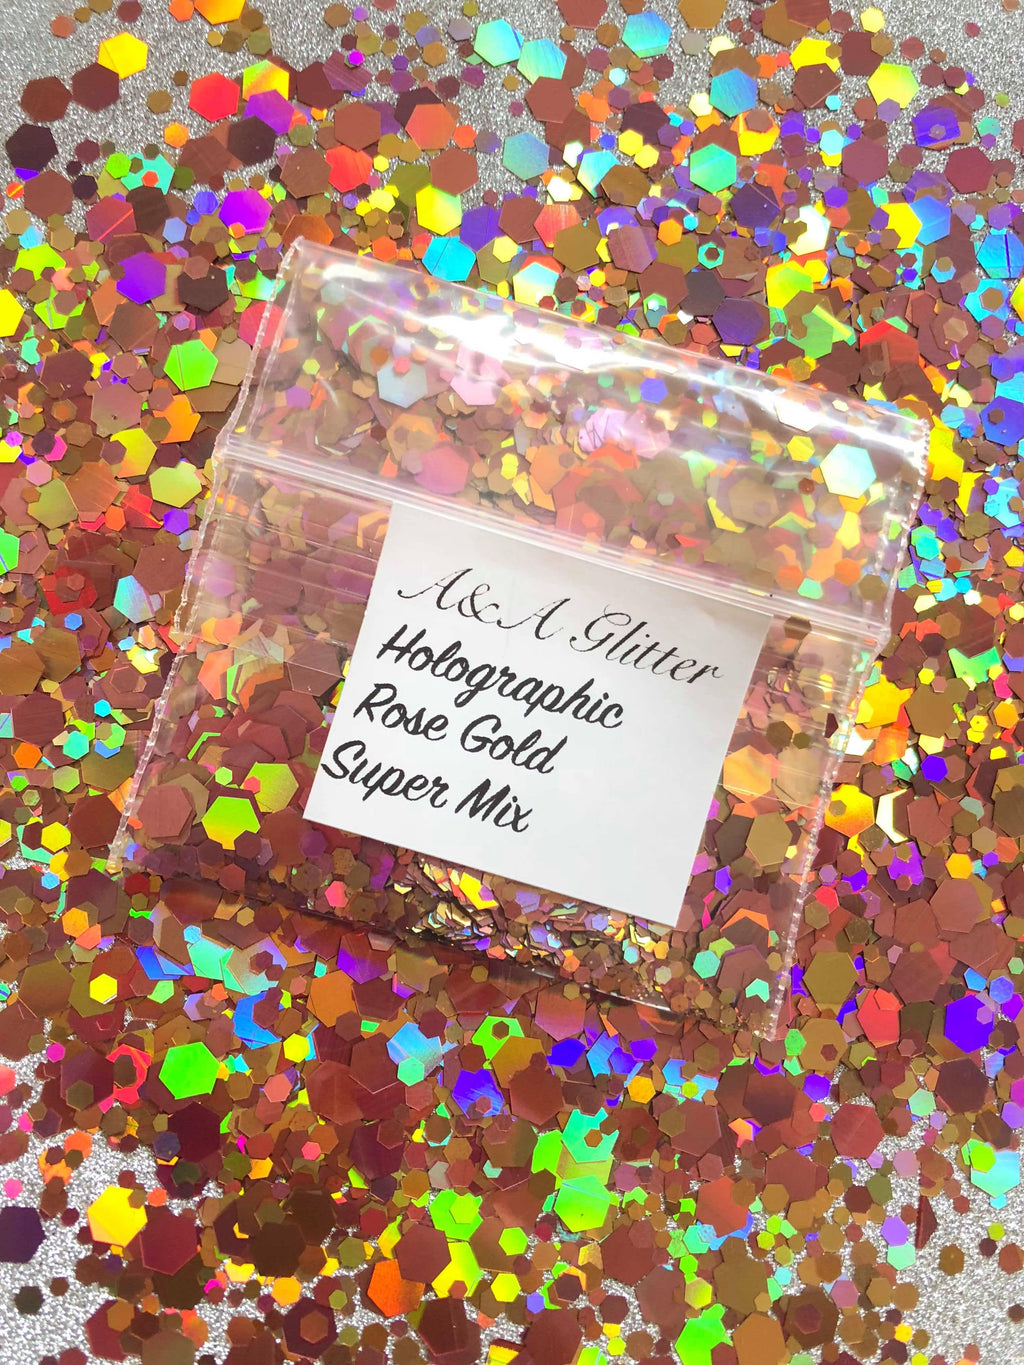 Holographic Rose Gold Super Mix - A&A Glitter